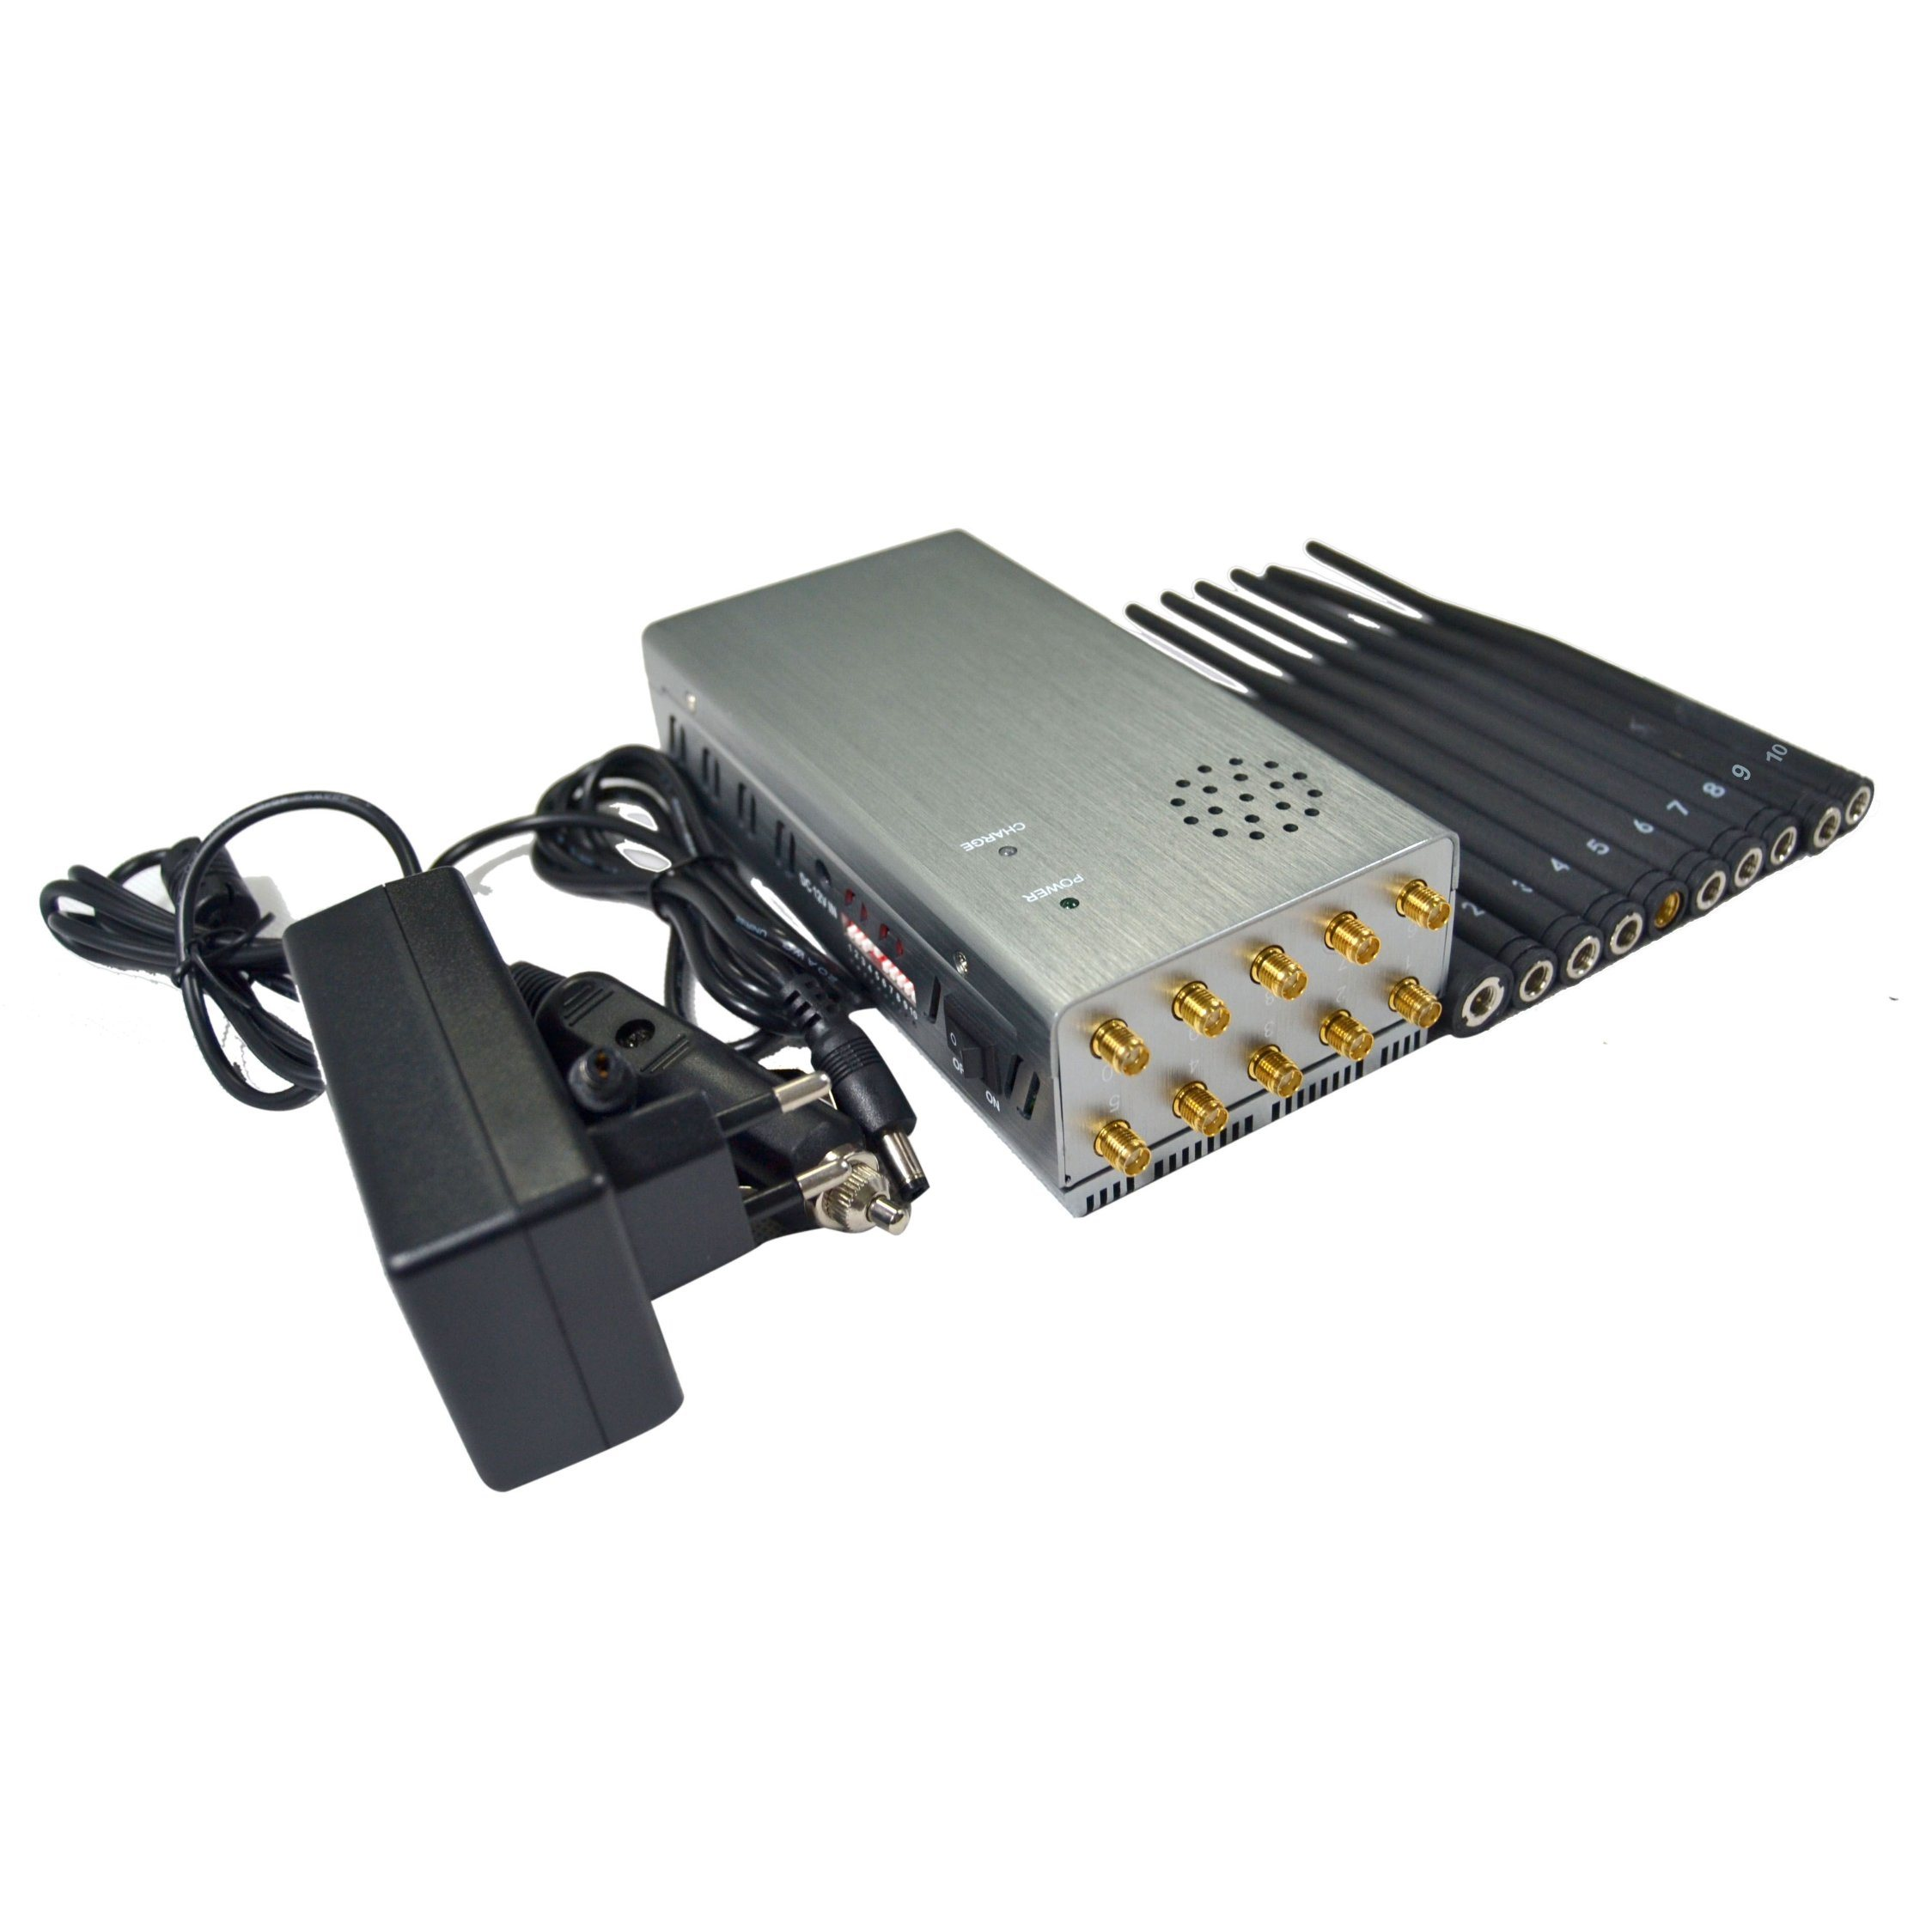 obd2 cell phone jammer